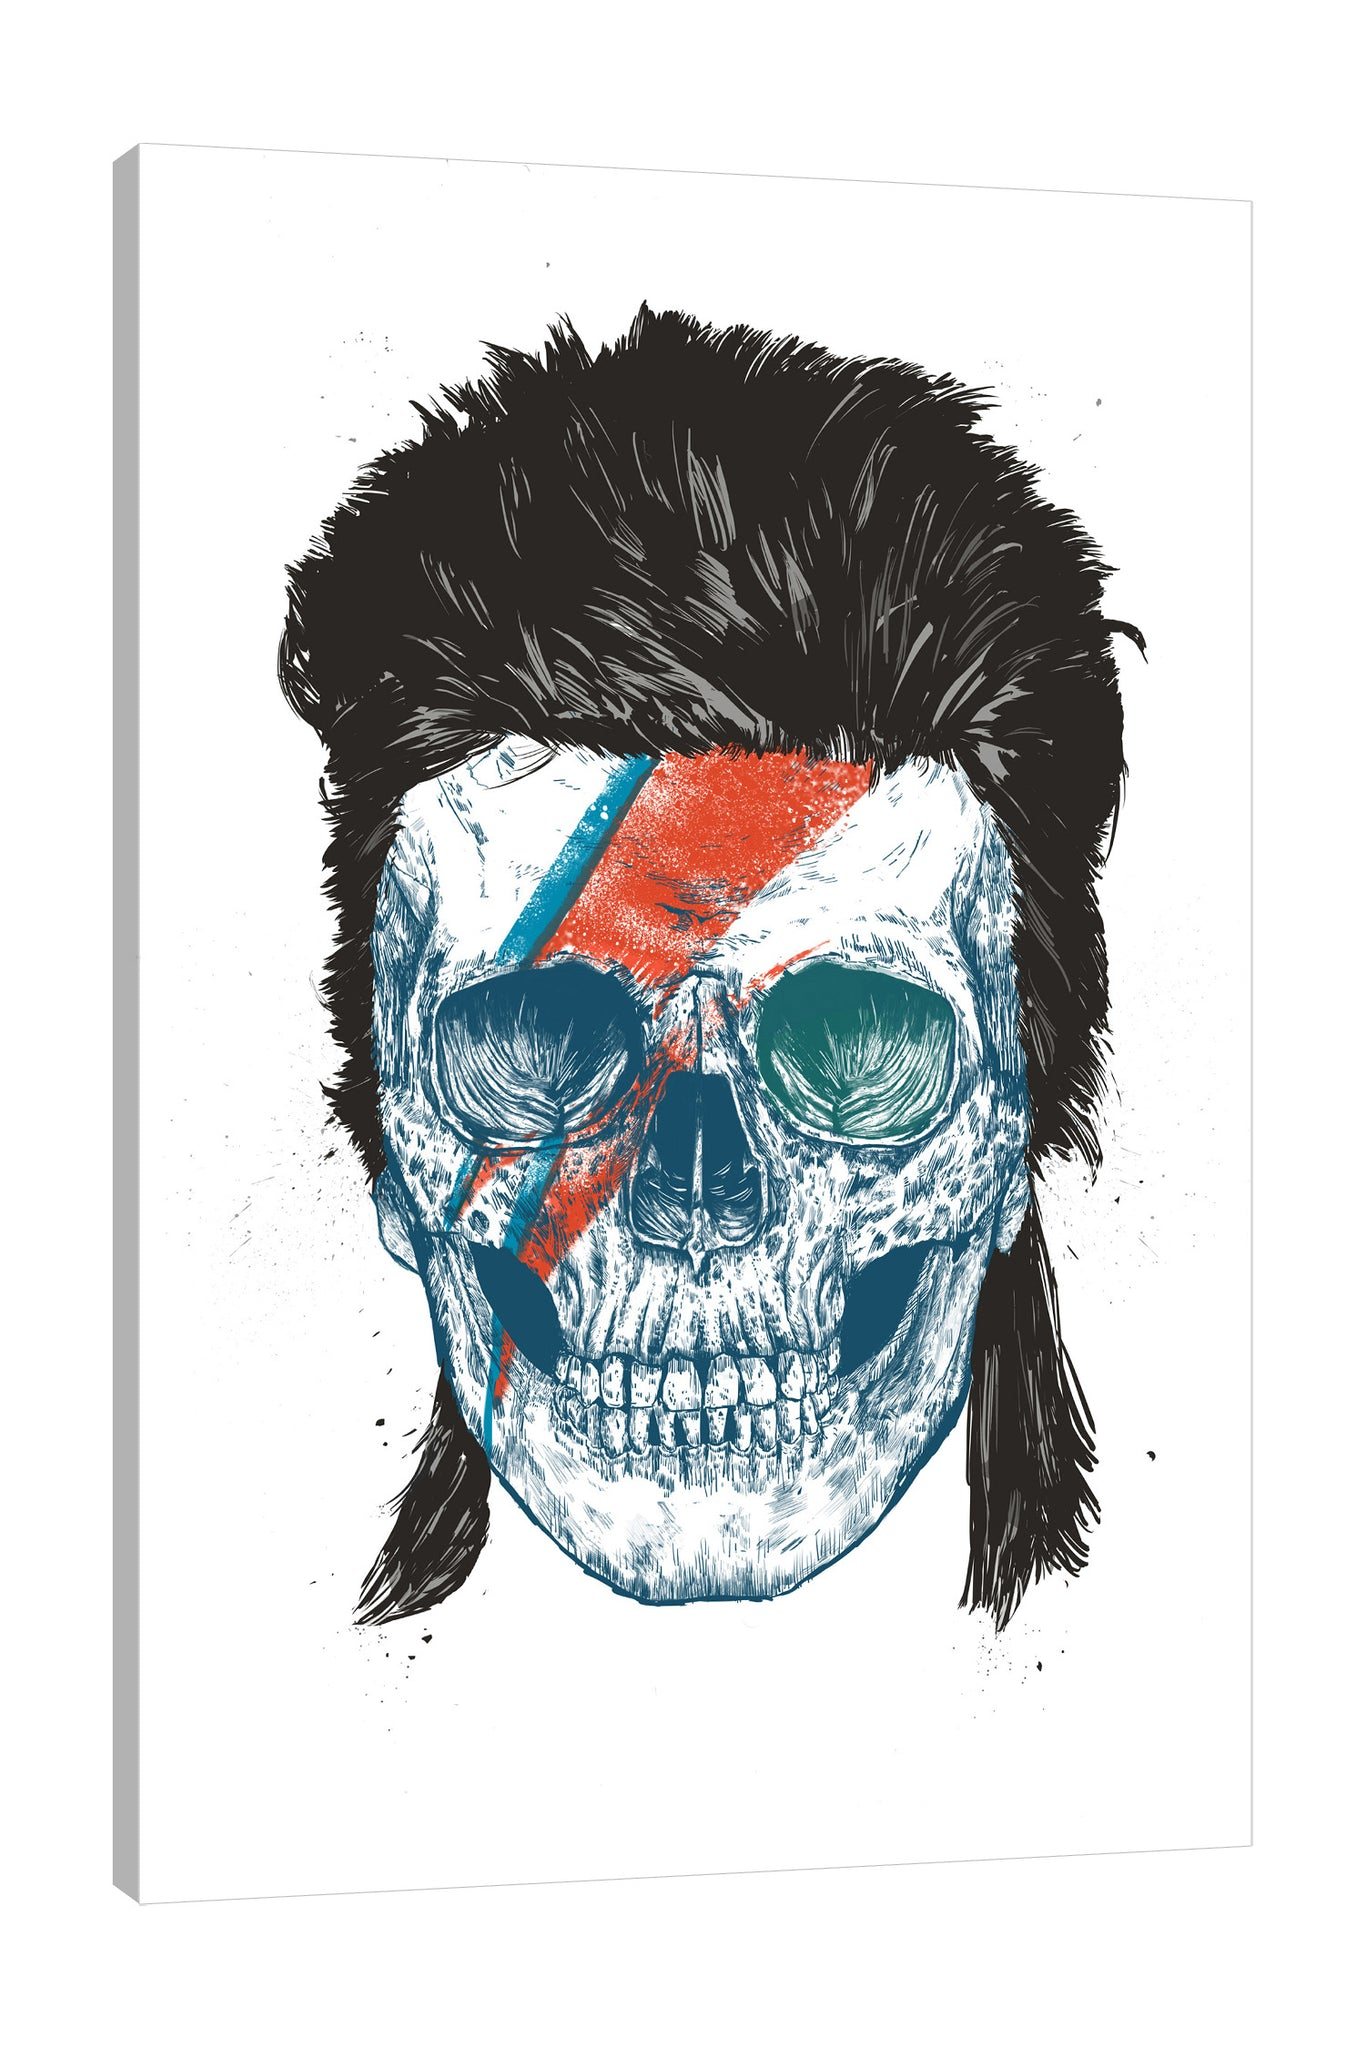 Balazs-Solti,Modern & Contemporary,People,Entertainment,skulls,skull,bones,bone,bowie,bowies skull,hair,red,blue,people,Red,Mist Gray,Black,White